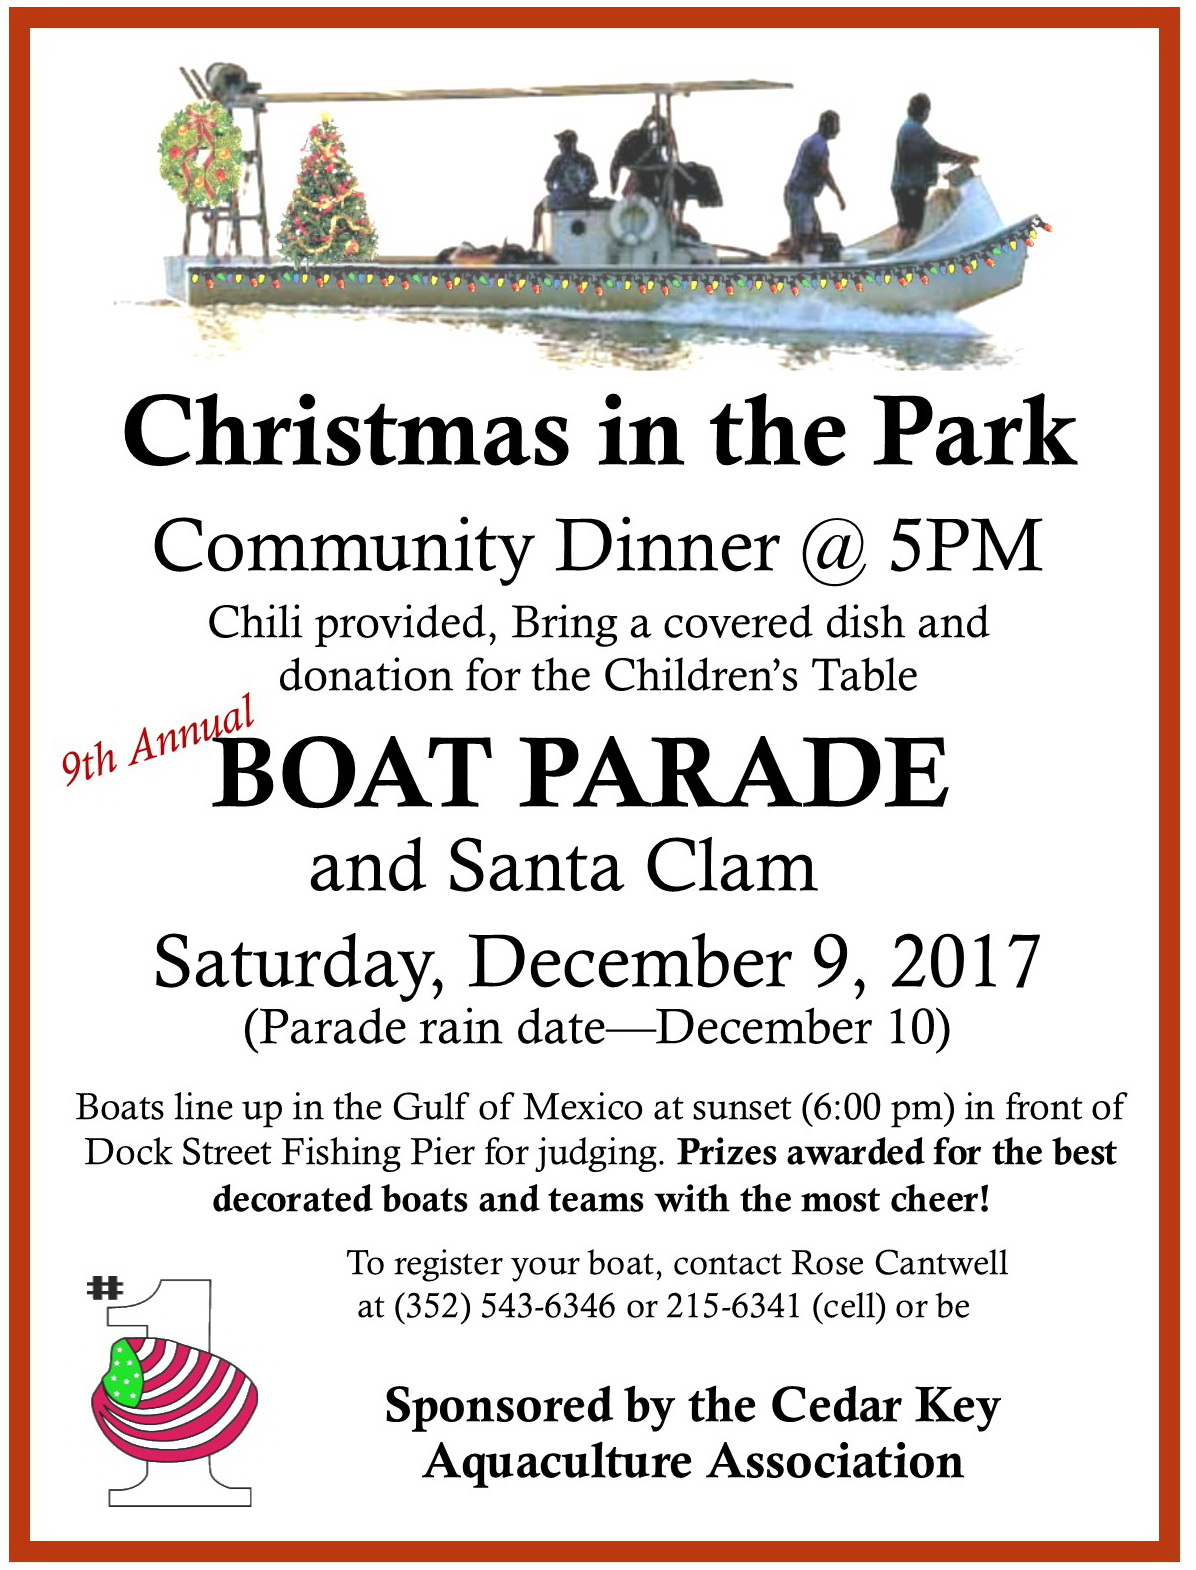 NOV 26 DEC 9 ANNMT Christmas Boat Parade Flyer 2017